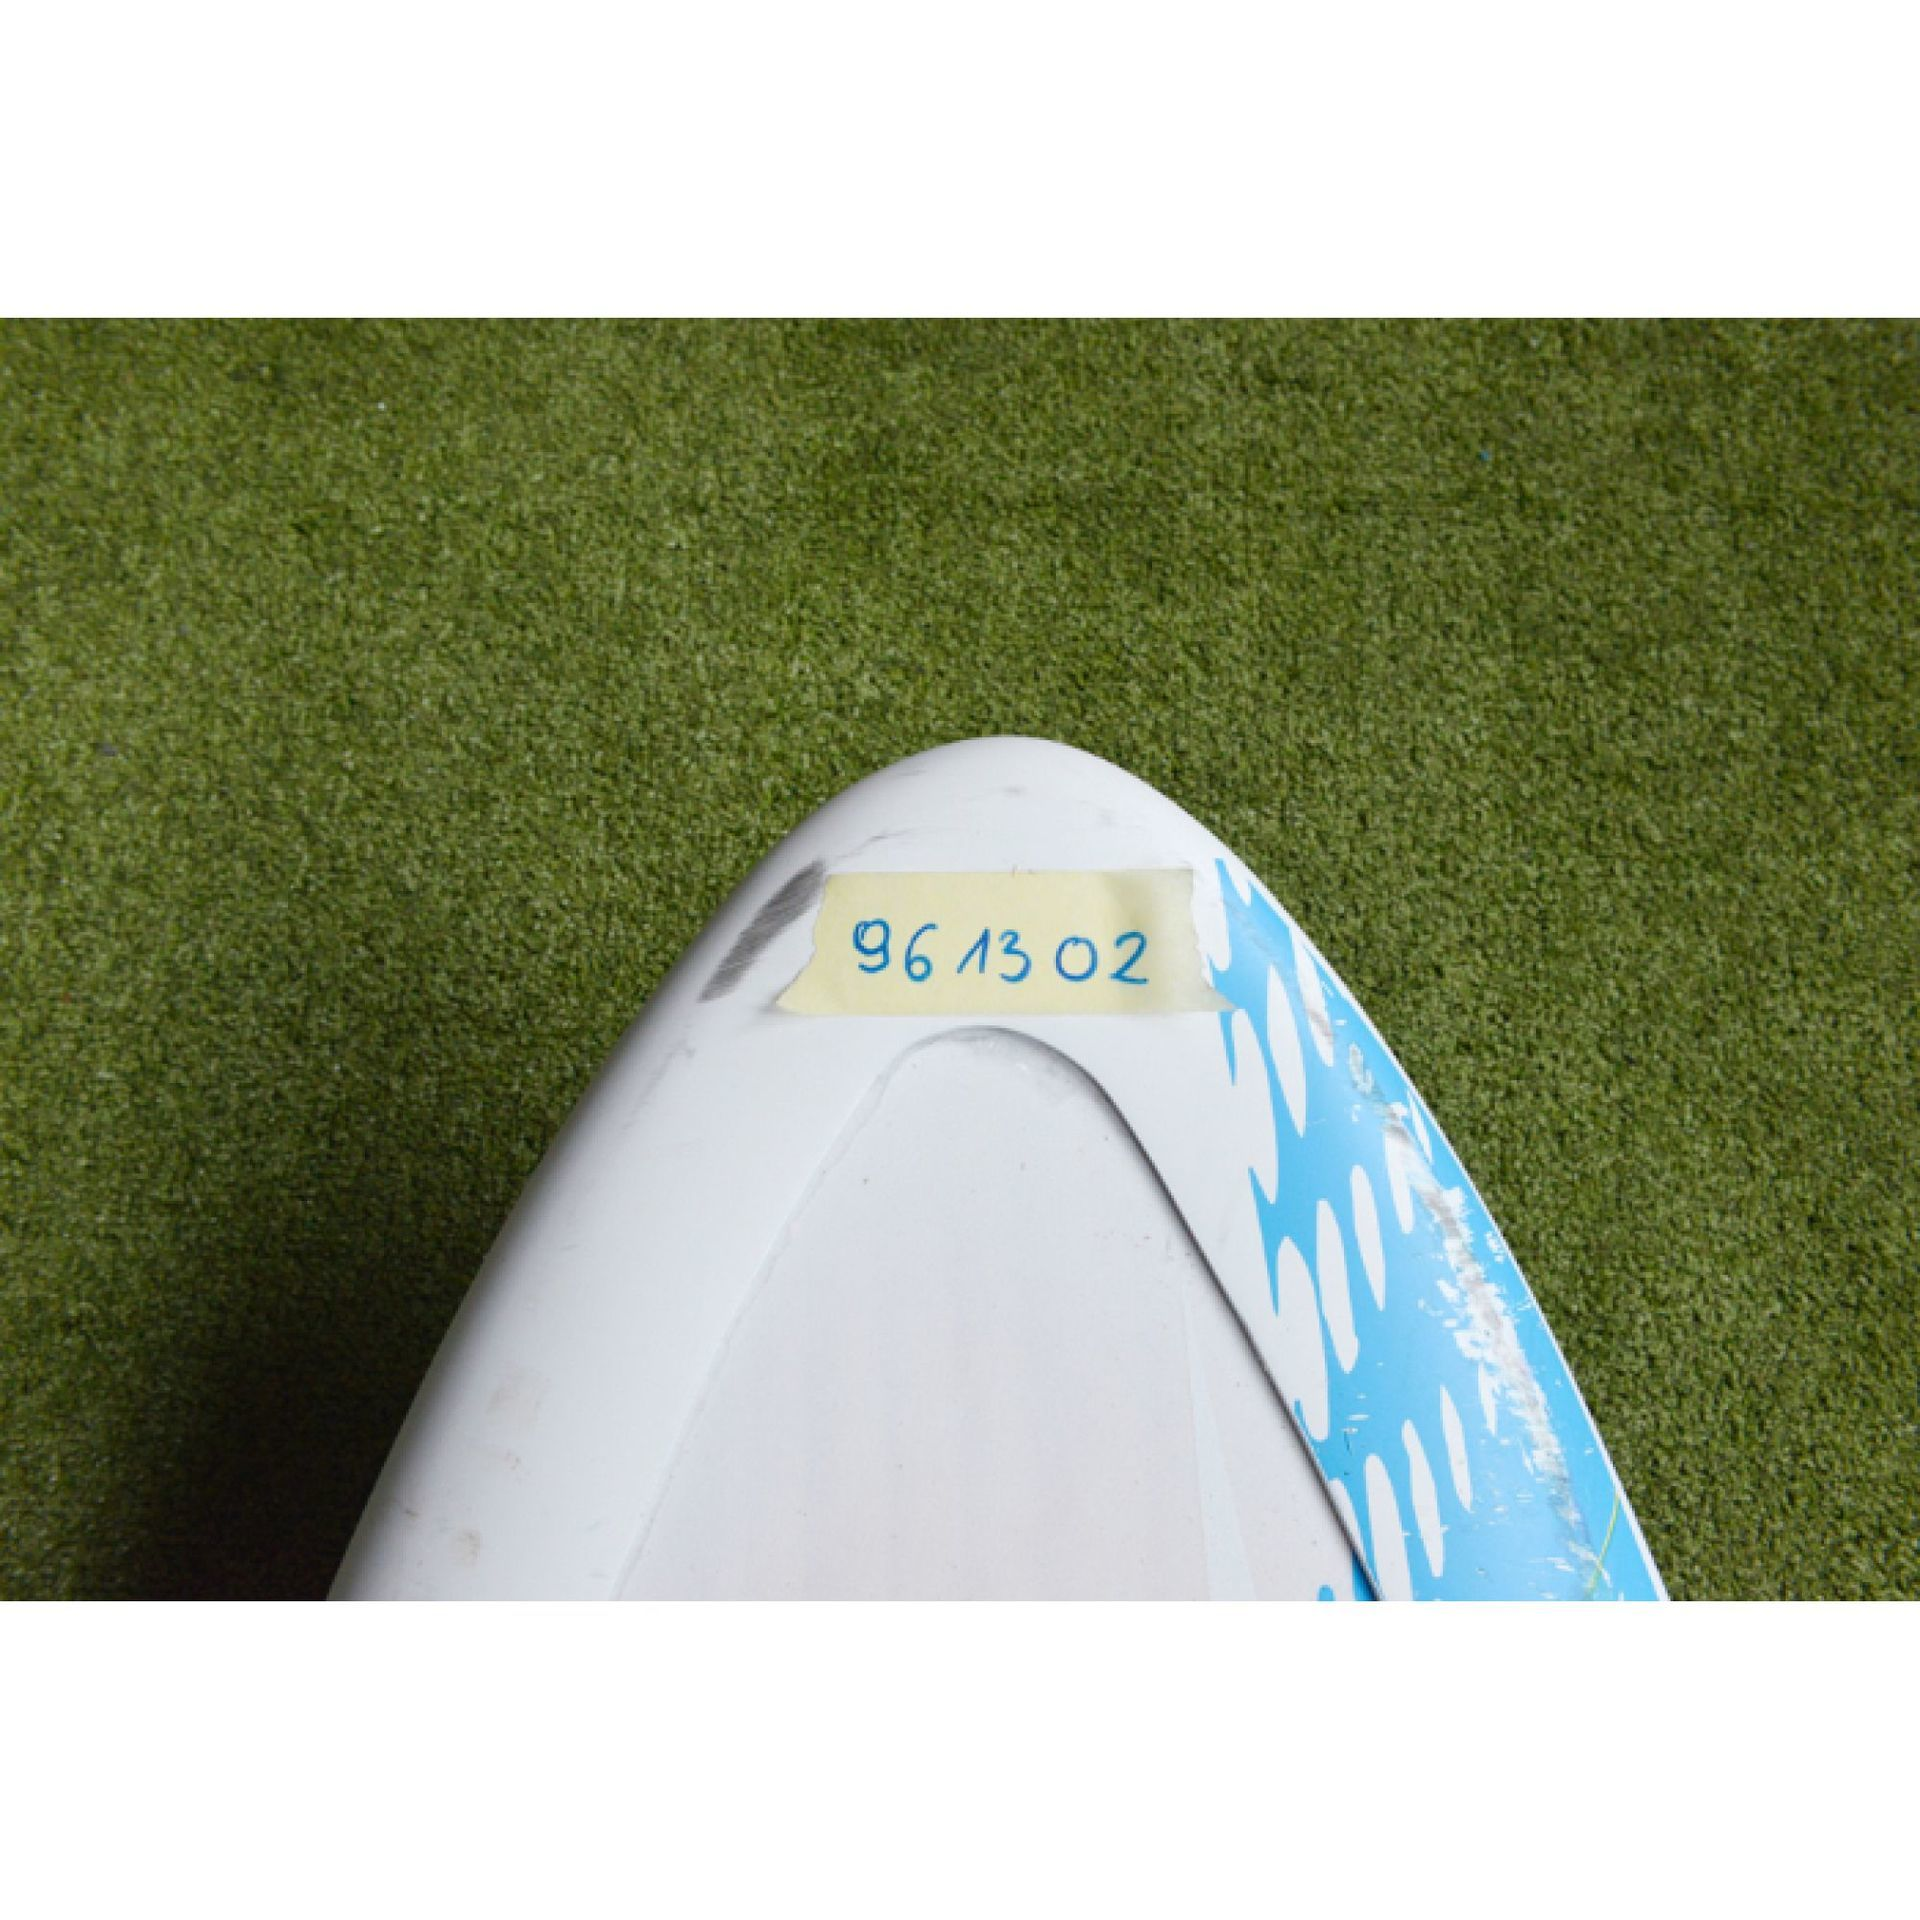 Deska windsurfingowa JP  All Ride 961302